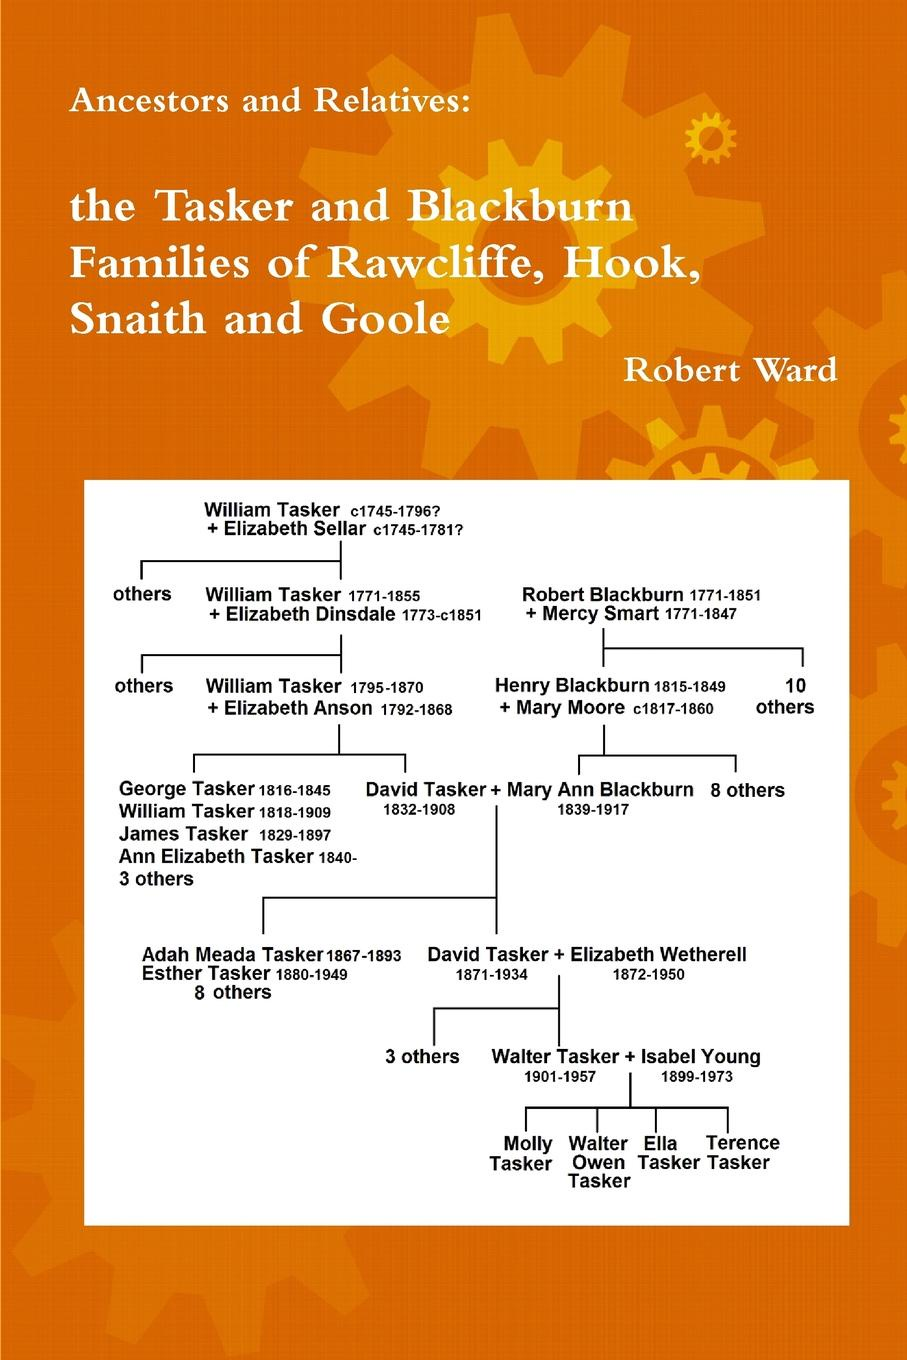 Robert Ward Ancestors and Relatives. The Tasker and Blackburn Families of Rawcliffe, Hook, Snaith and Goole цена